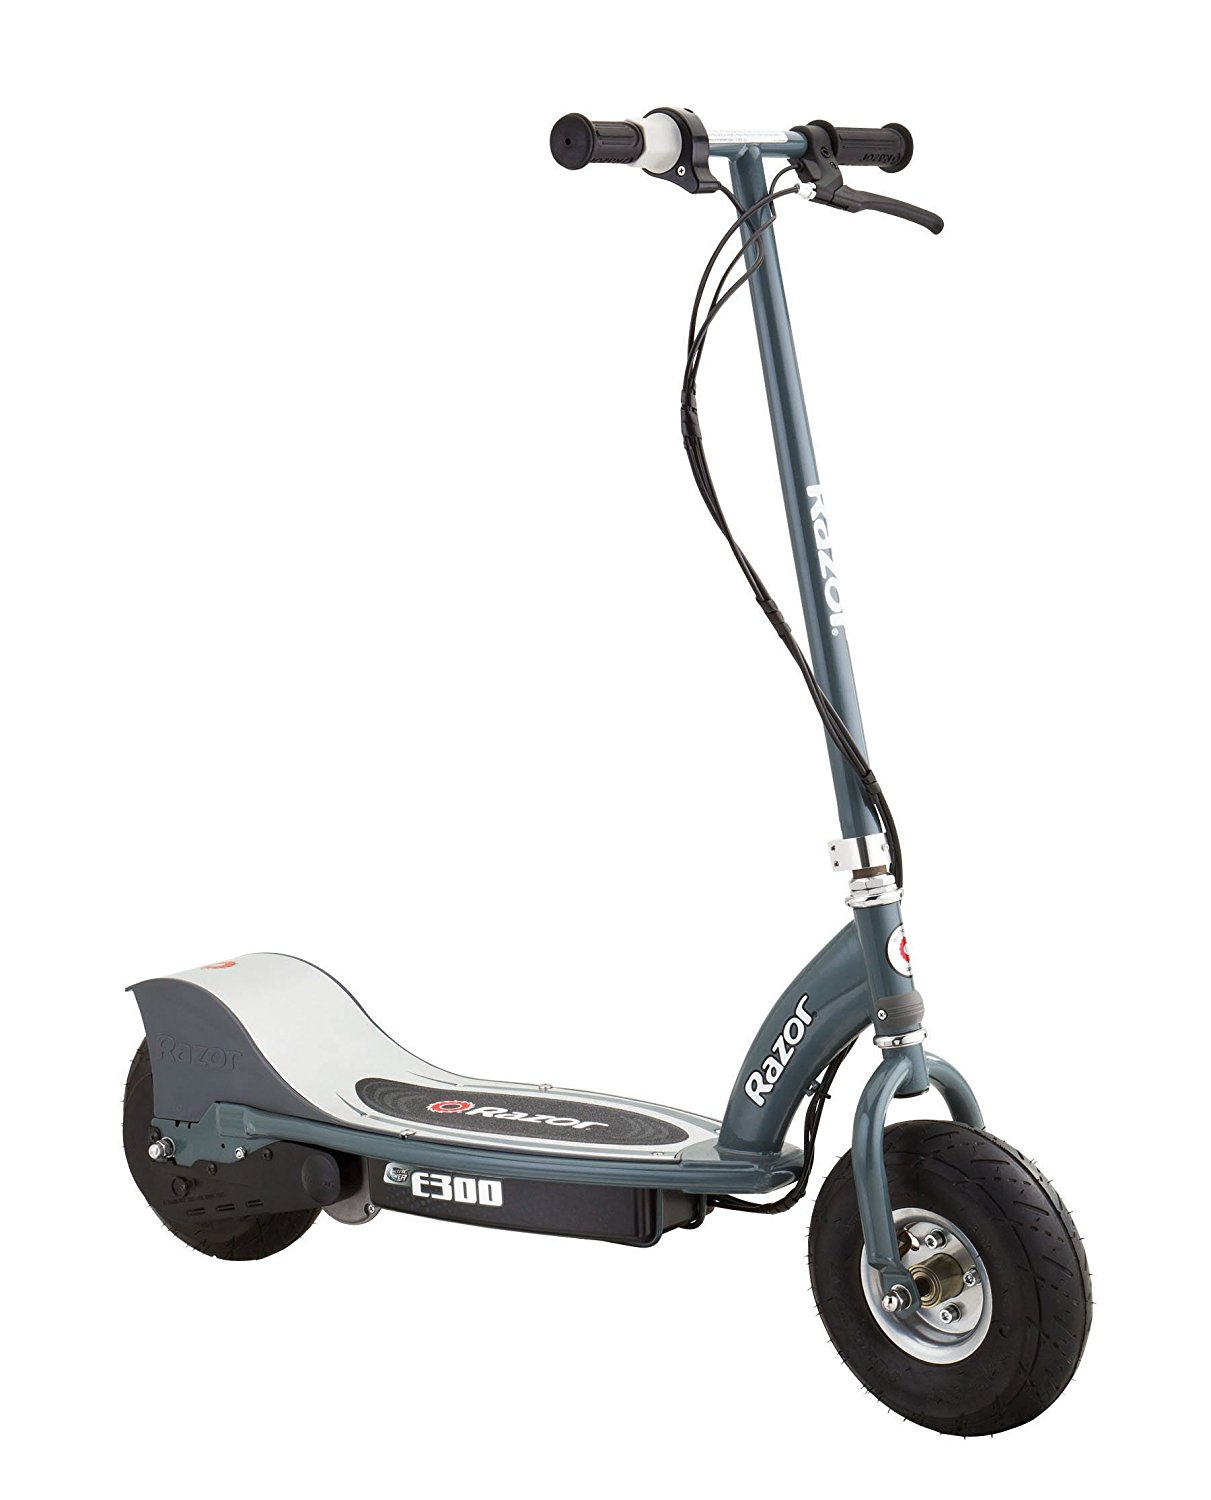 Review of Razor E300 Electric Scooter